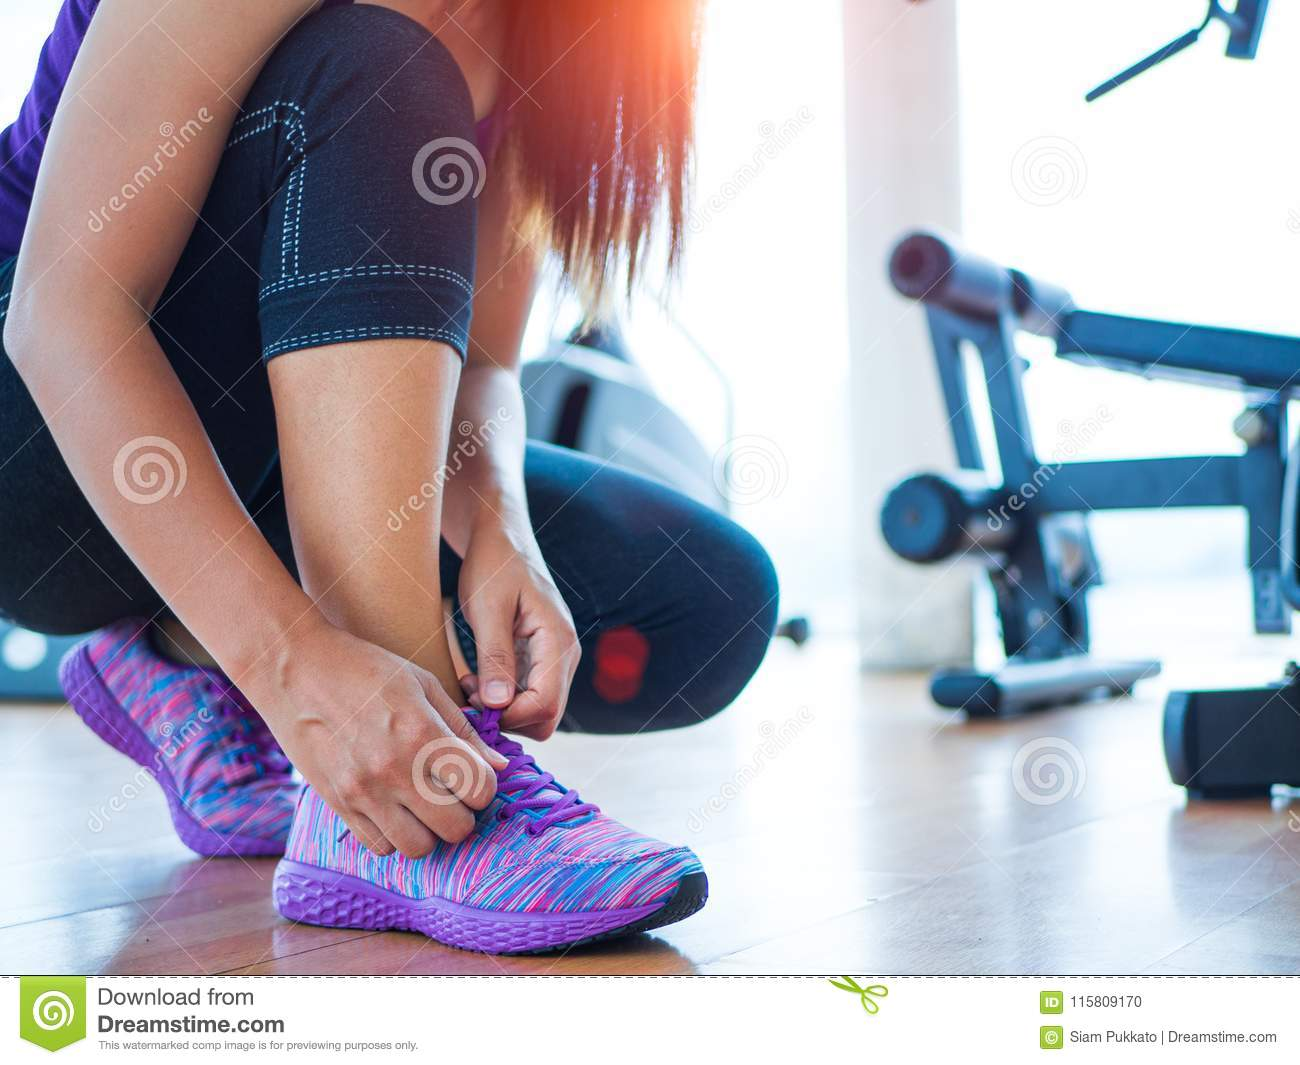 closeup of woman tying shoe laces. Female sport fitness runner getting ready for jogging in gym room